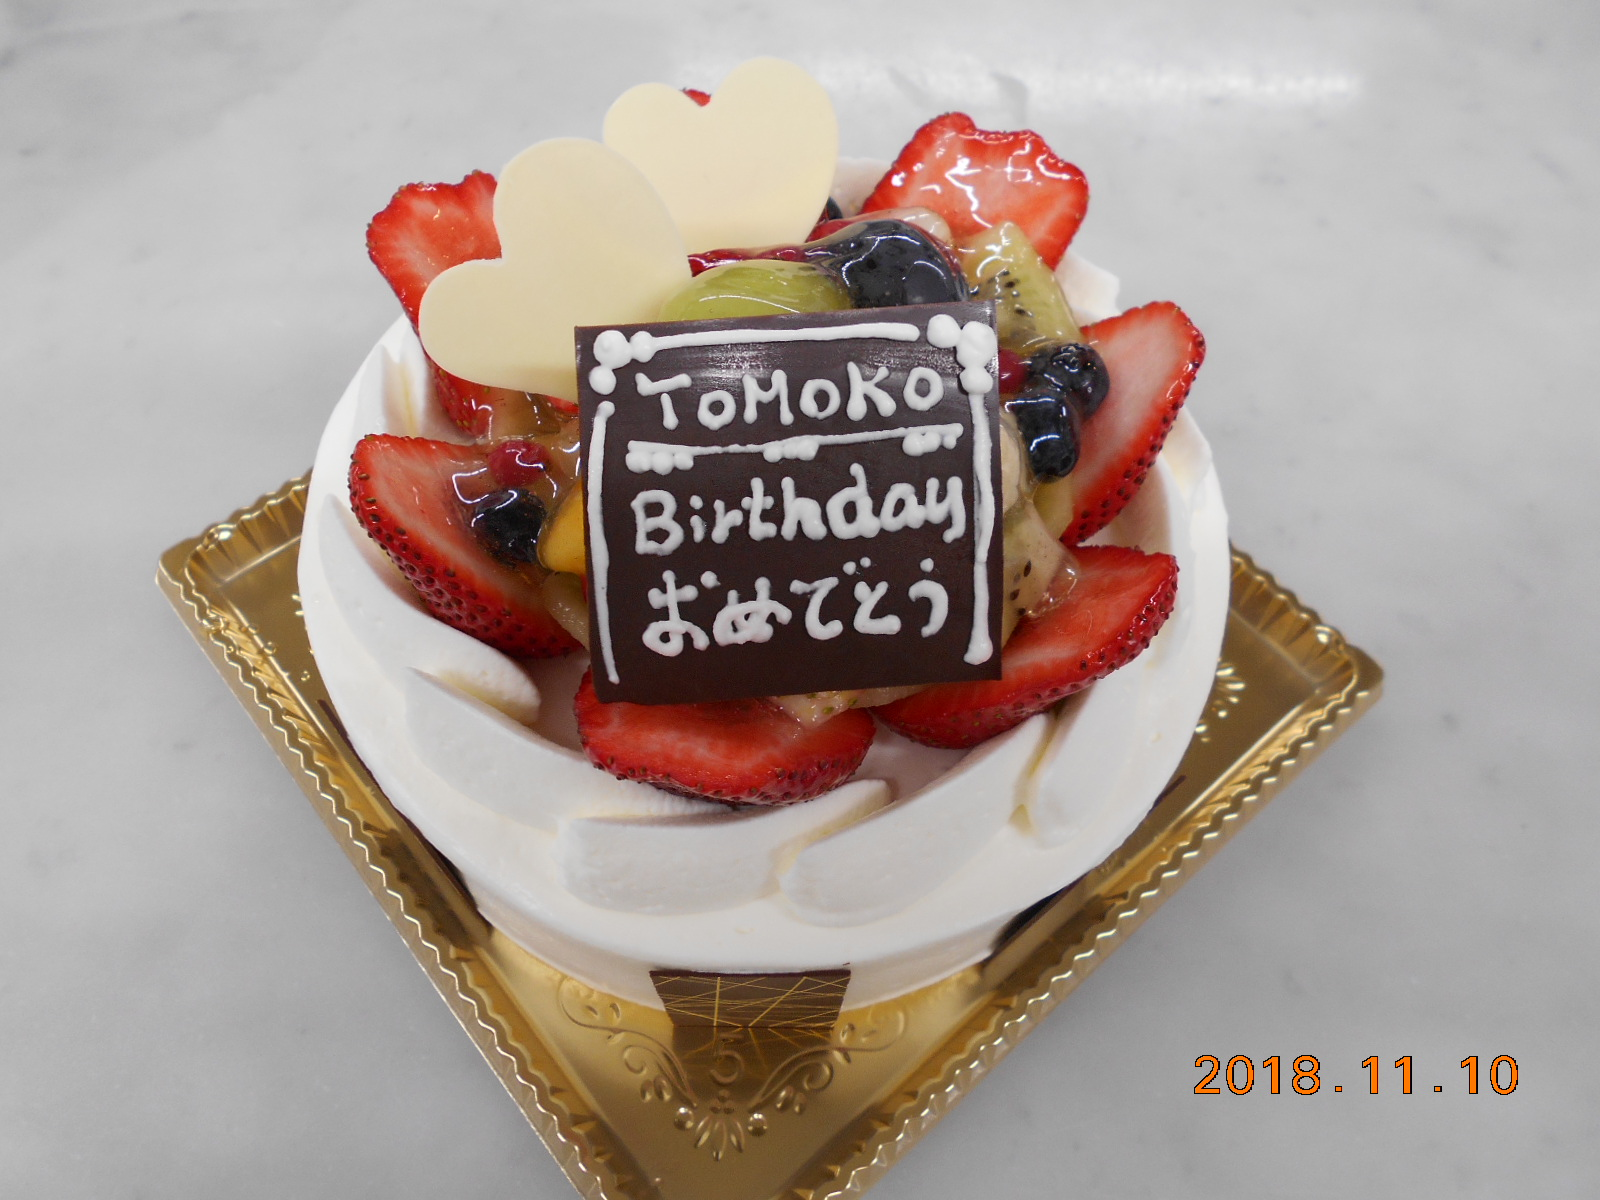 TOMOKO Birthdayおめでとう